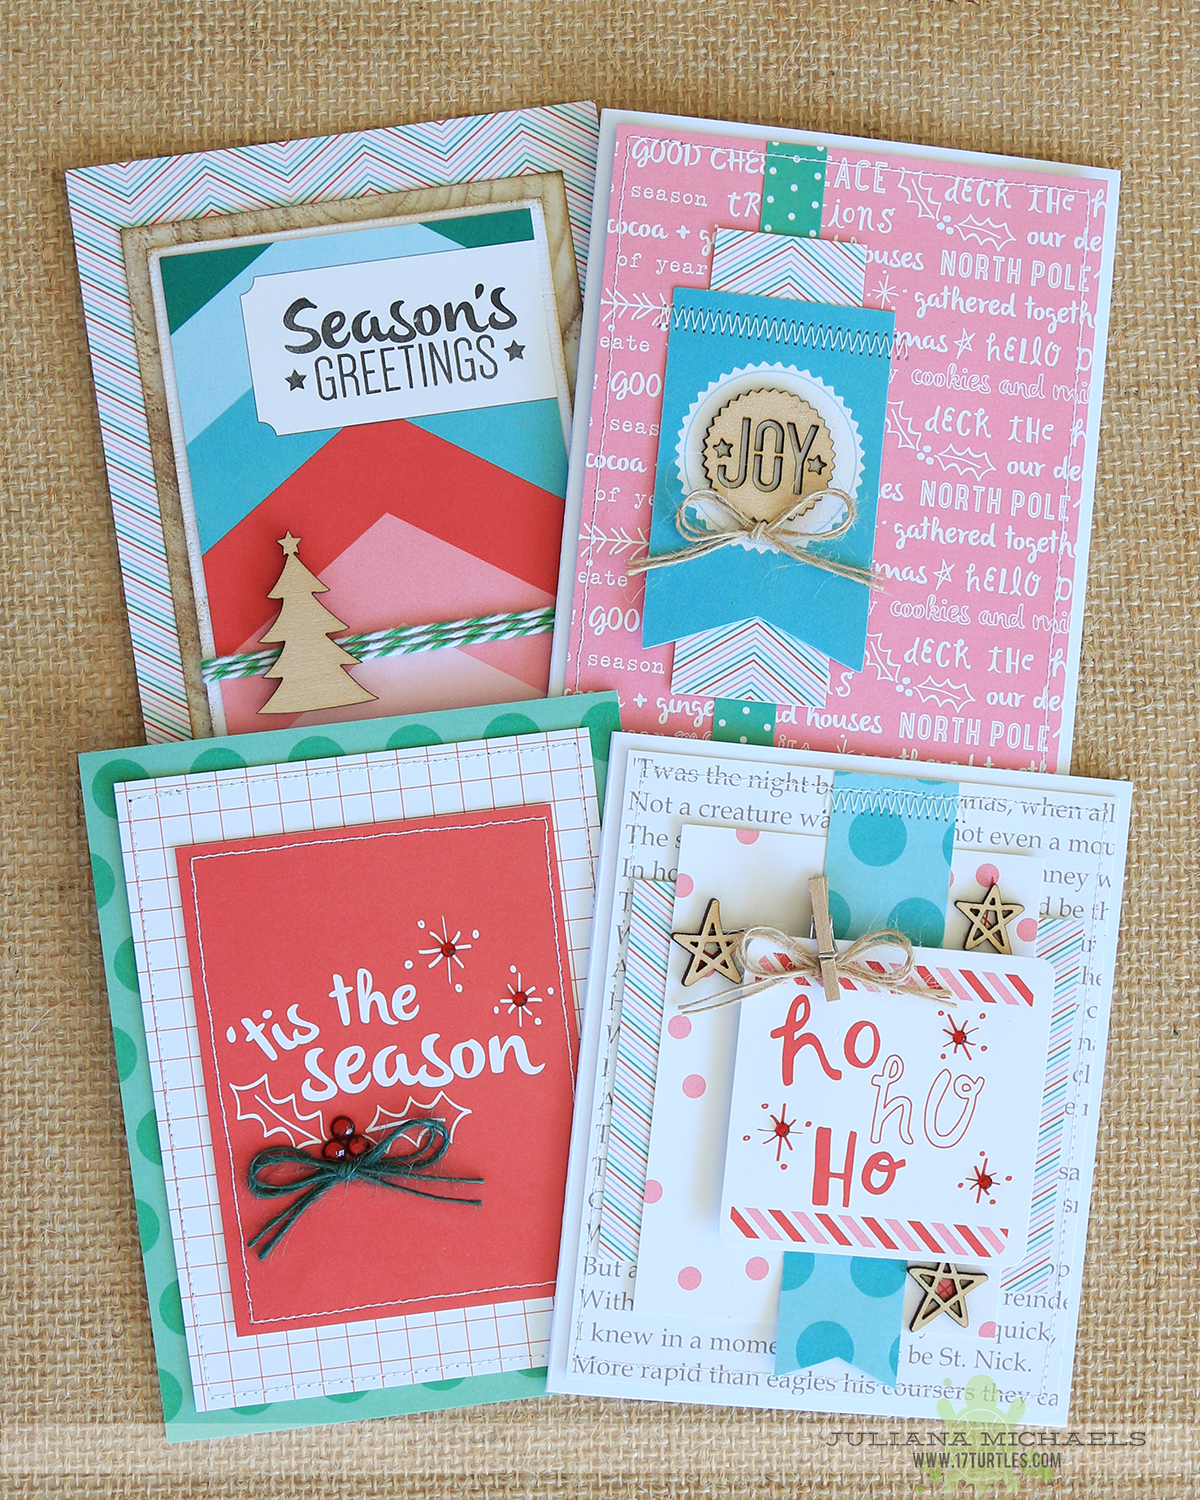 Christmas card ideas elles studio good cheer collection christmas card ideas using elles studio good cheer collection by juliana michaels m4hsunfo